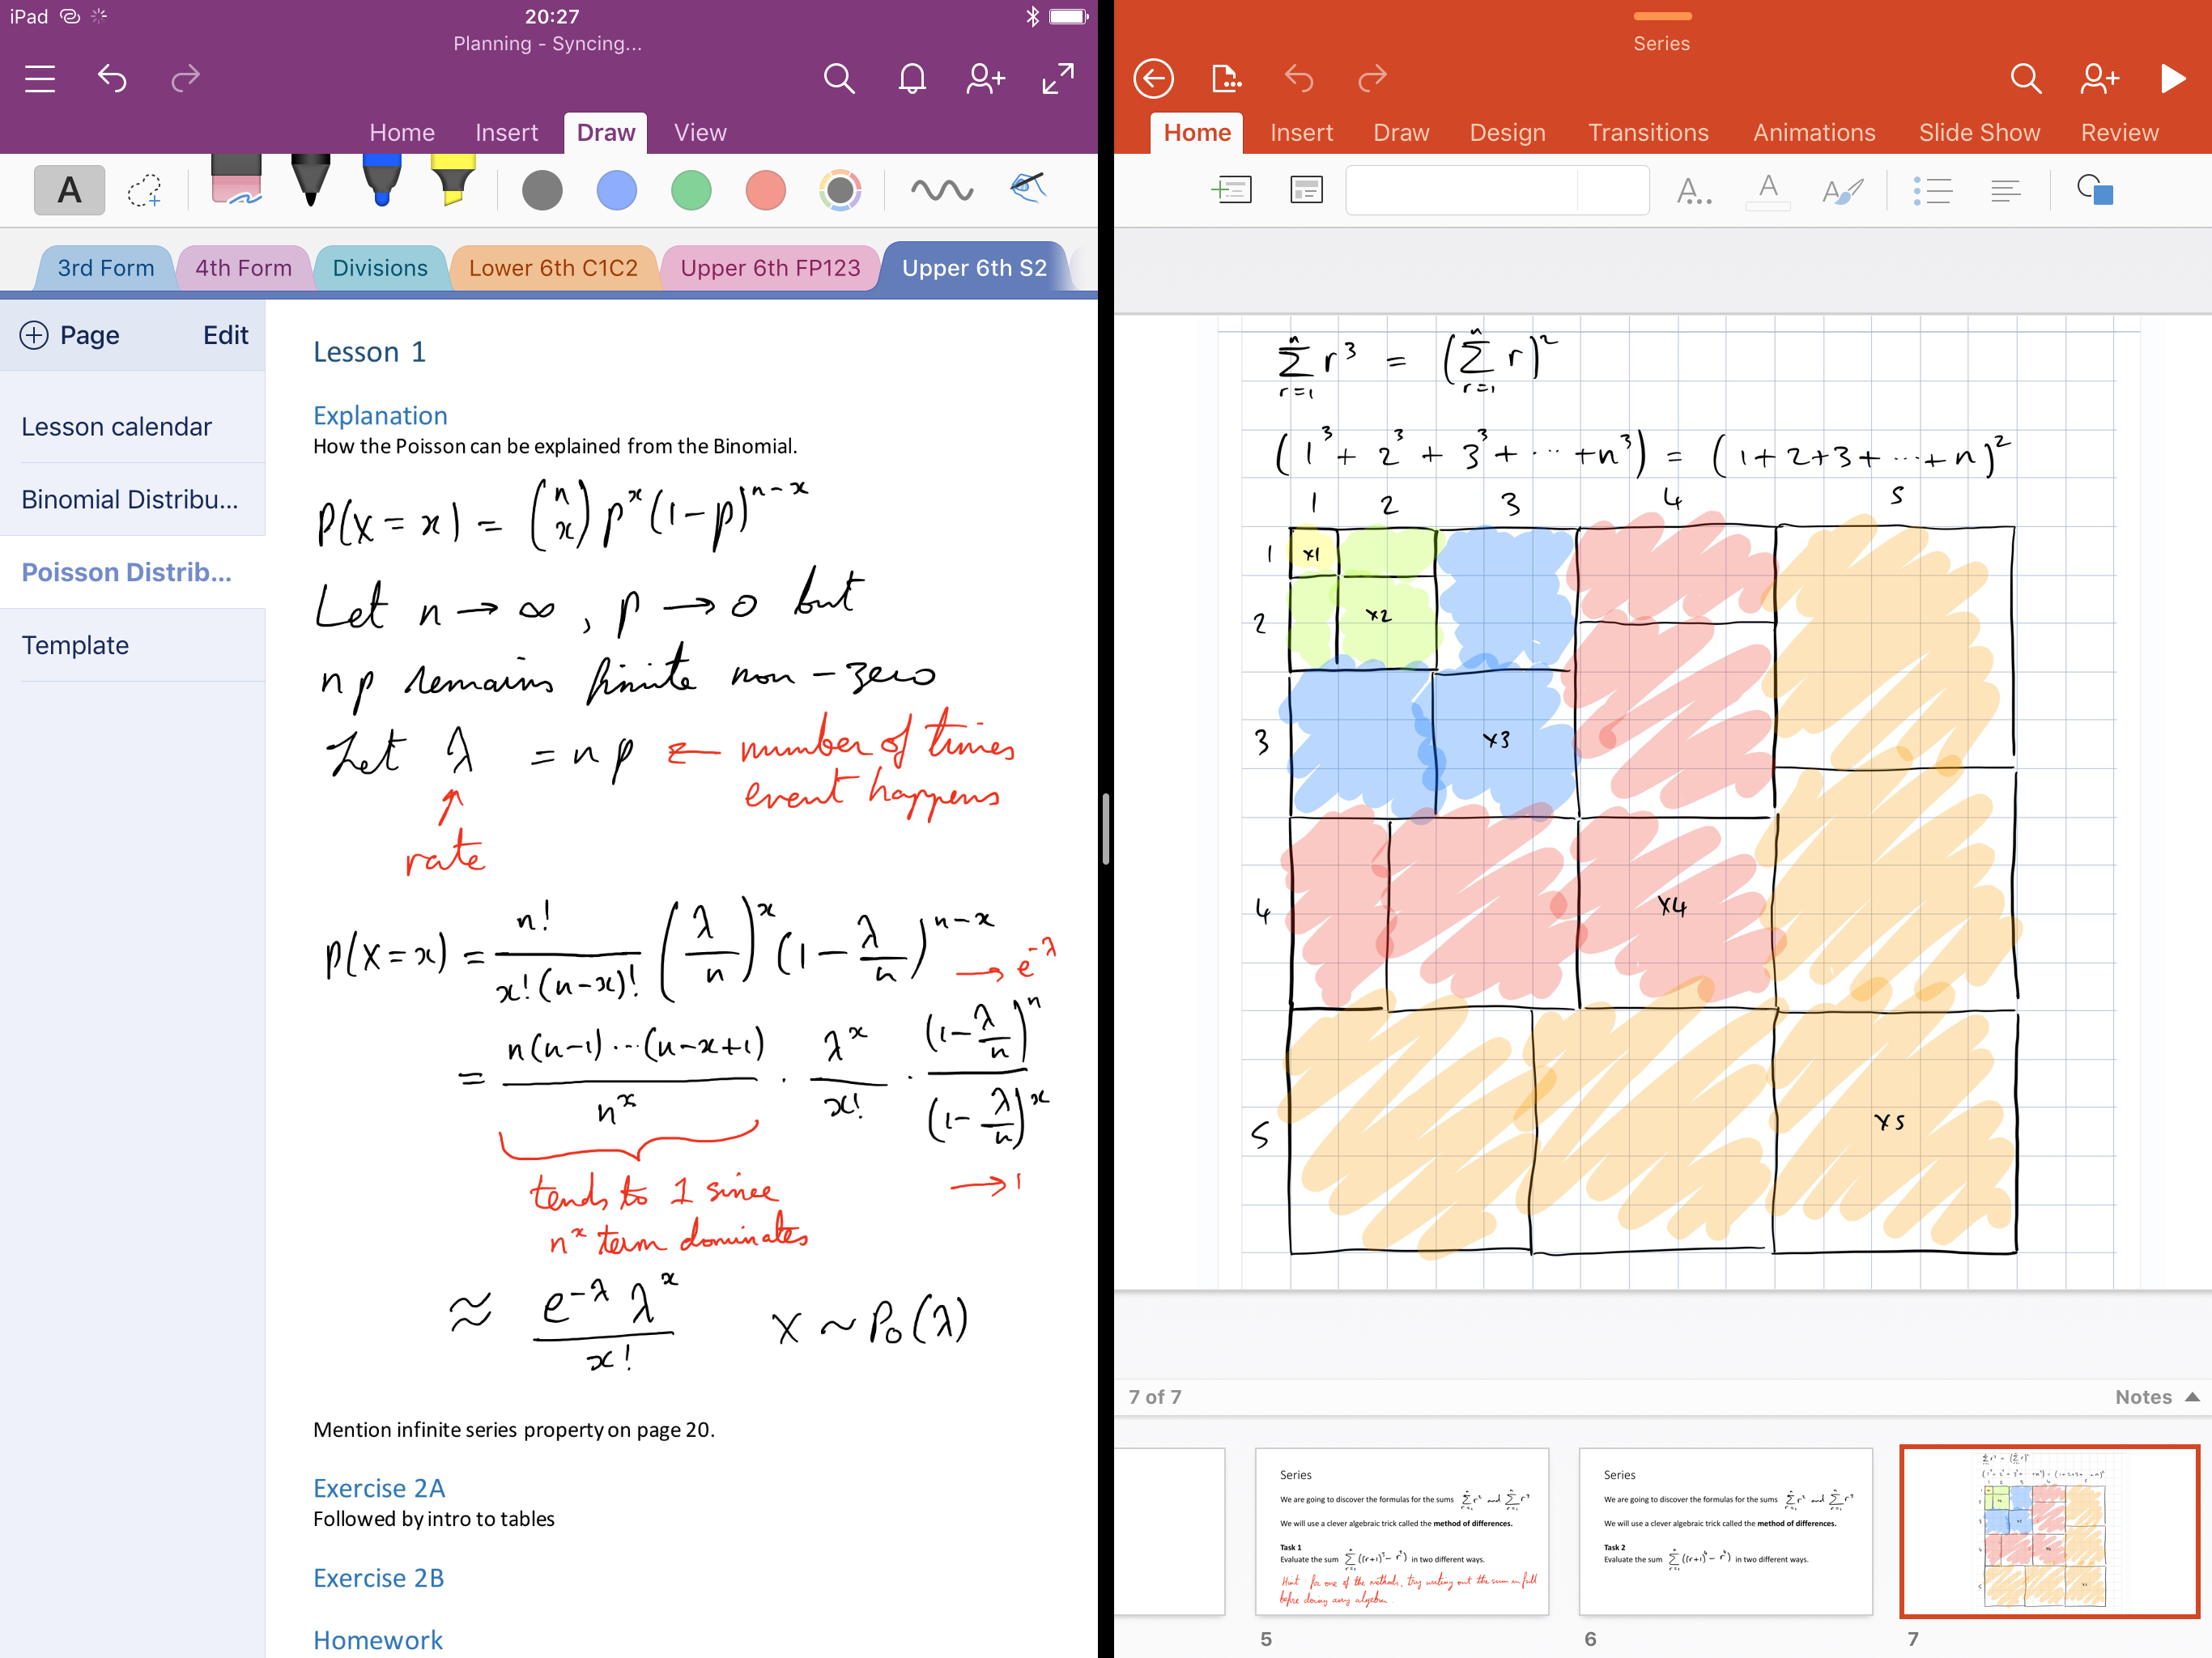 OneNote and Powerpoint in split screen multitasking